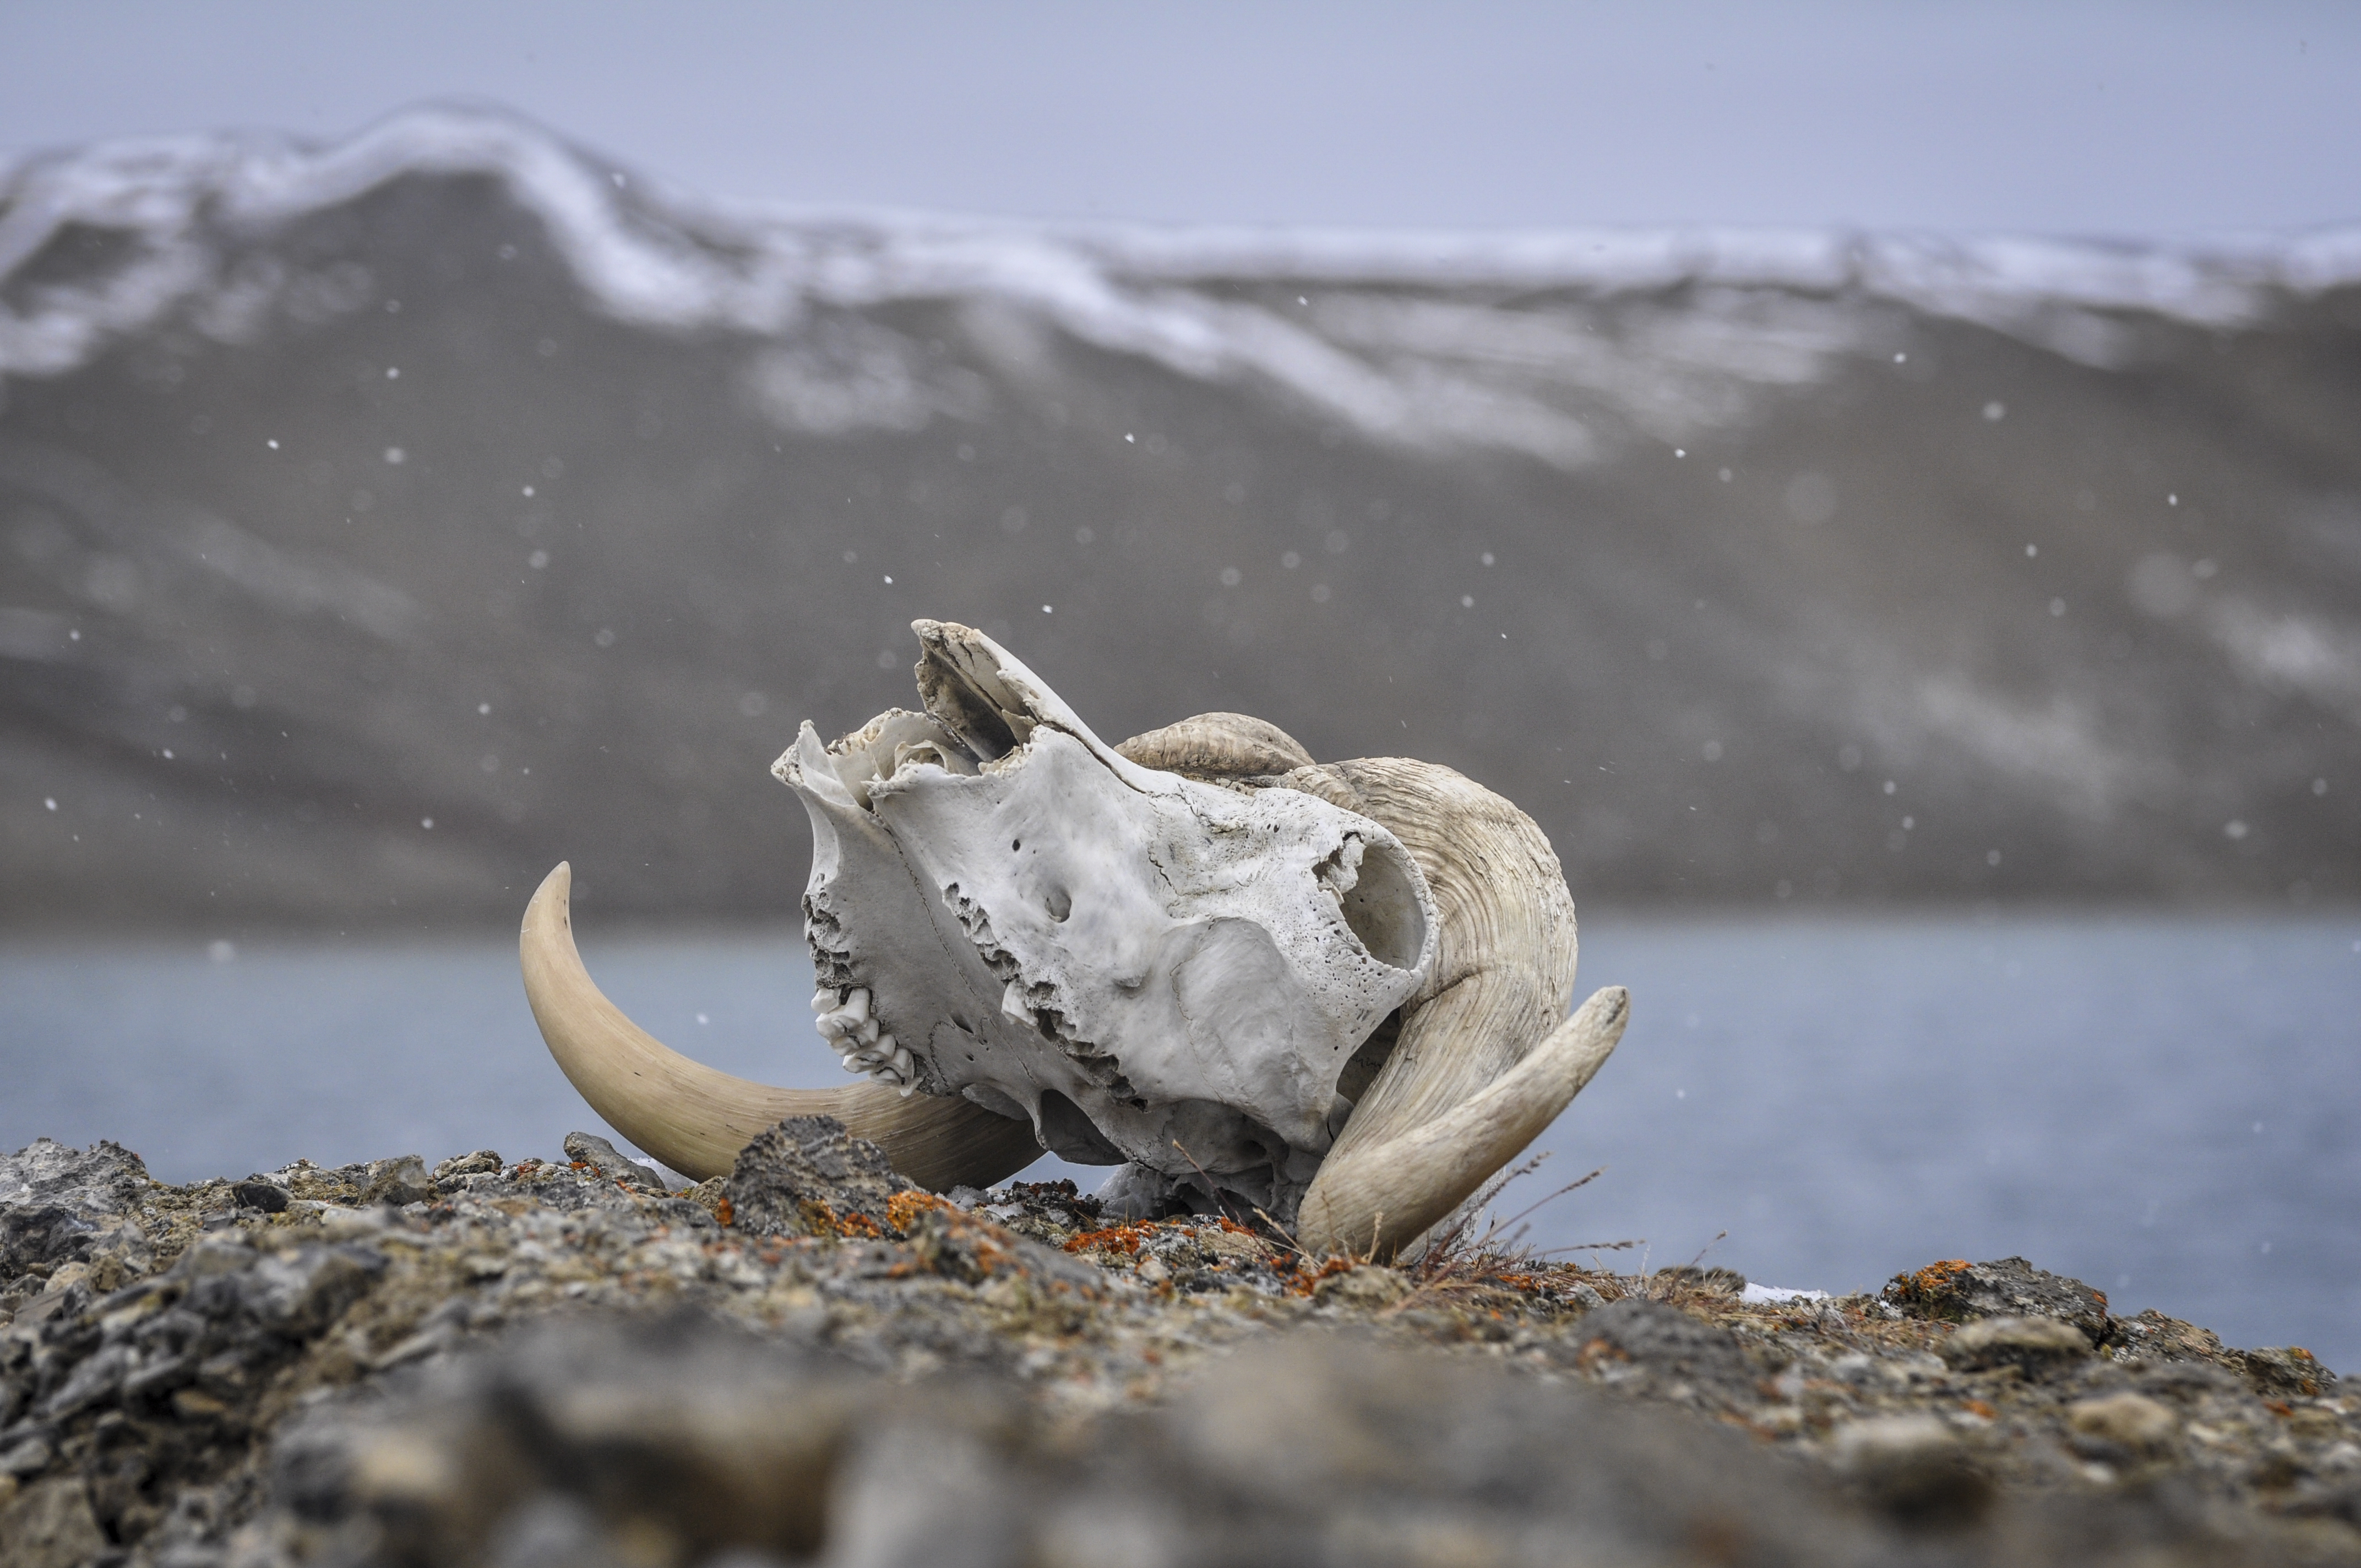 Skull of a muskox. Photo: Åsa Lindgren